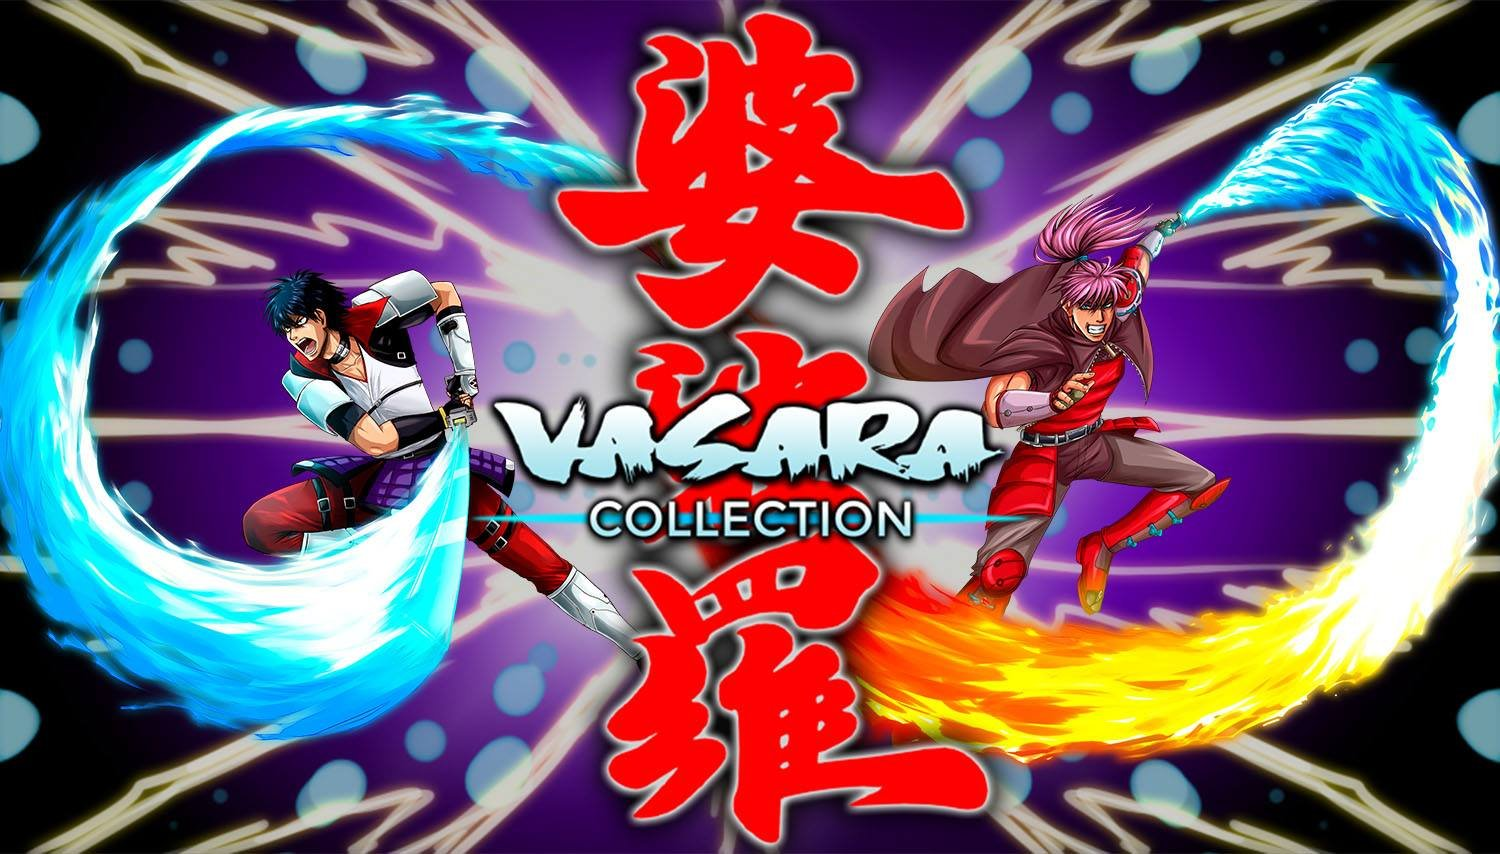 vasara-collection-new-timeless-mode